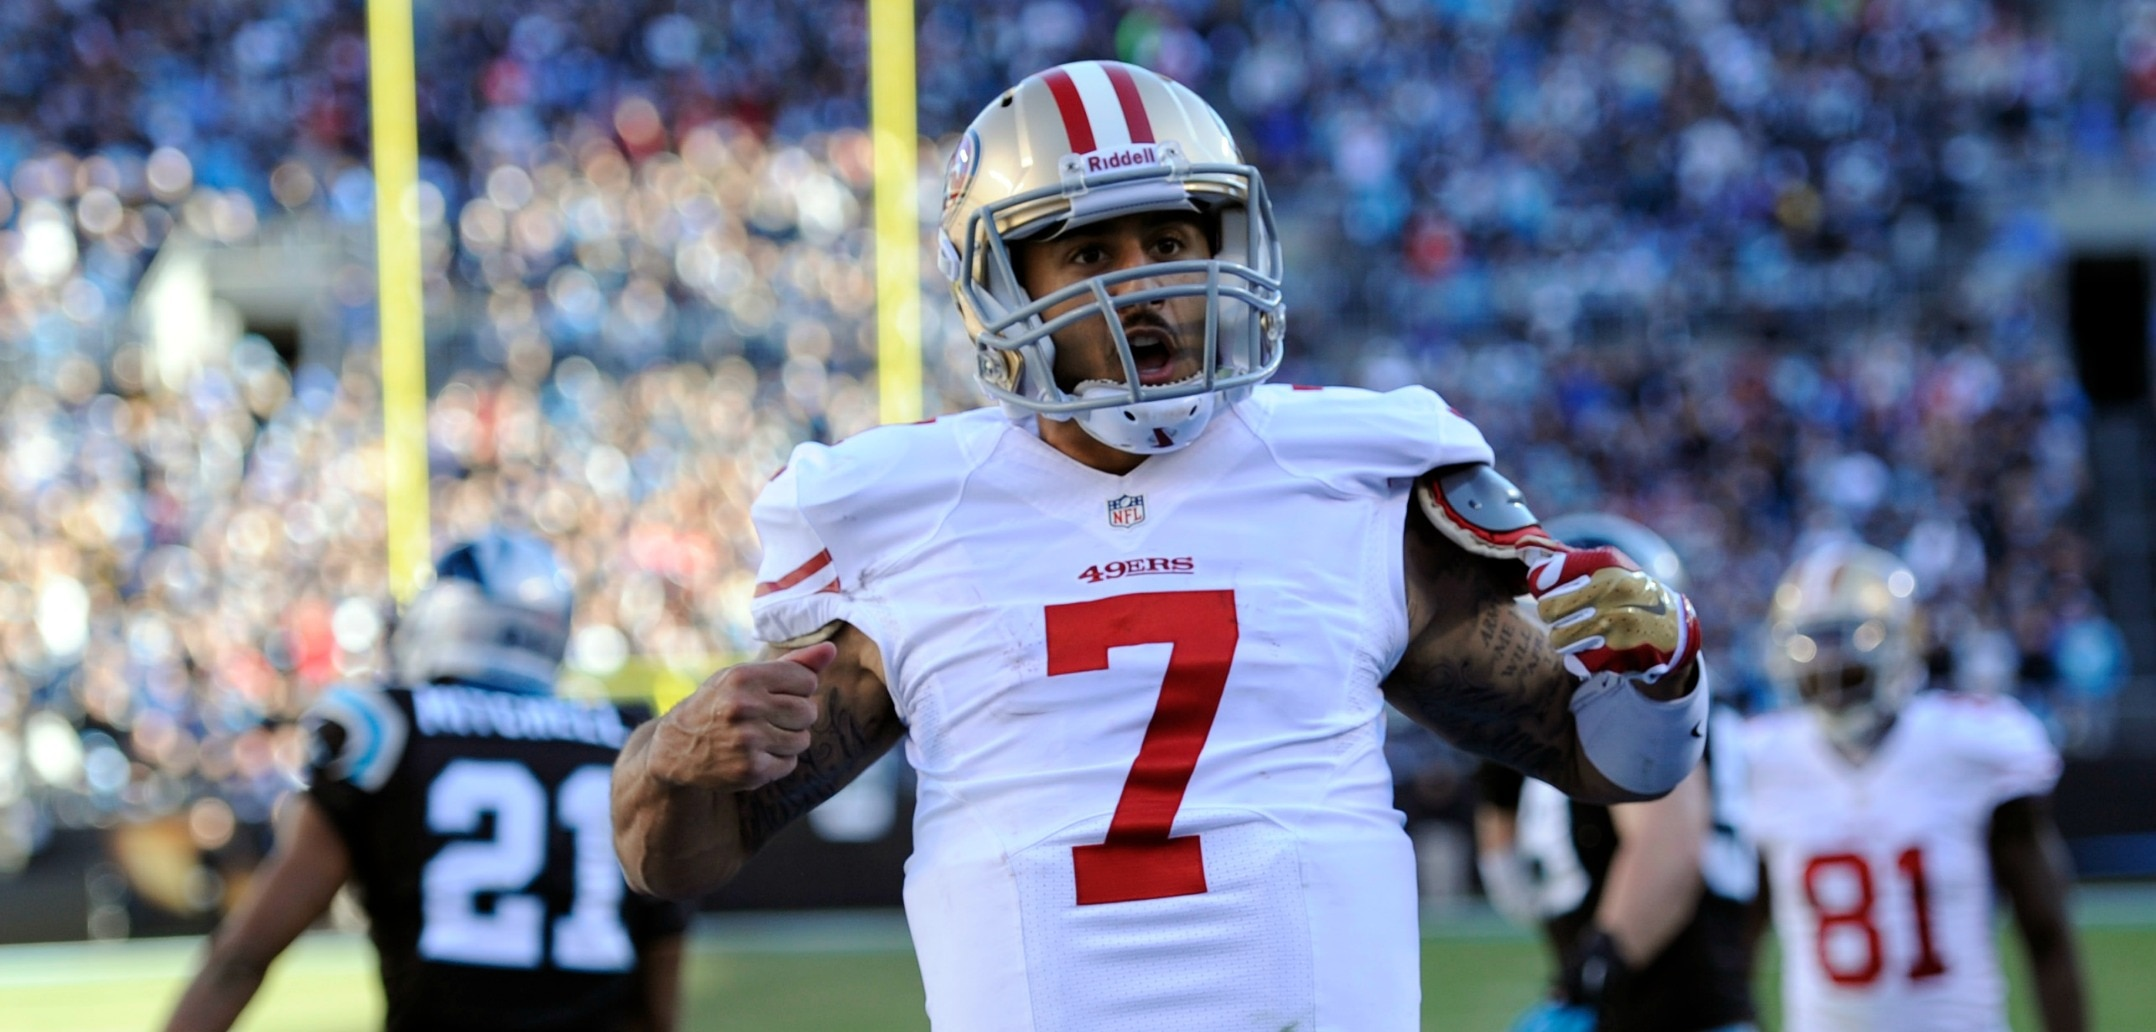 Courtesy of CSN Bay Area: Expect another huge Week 1 performance from Kaepernick